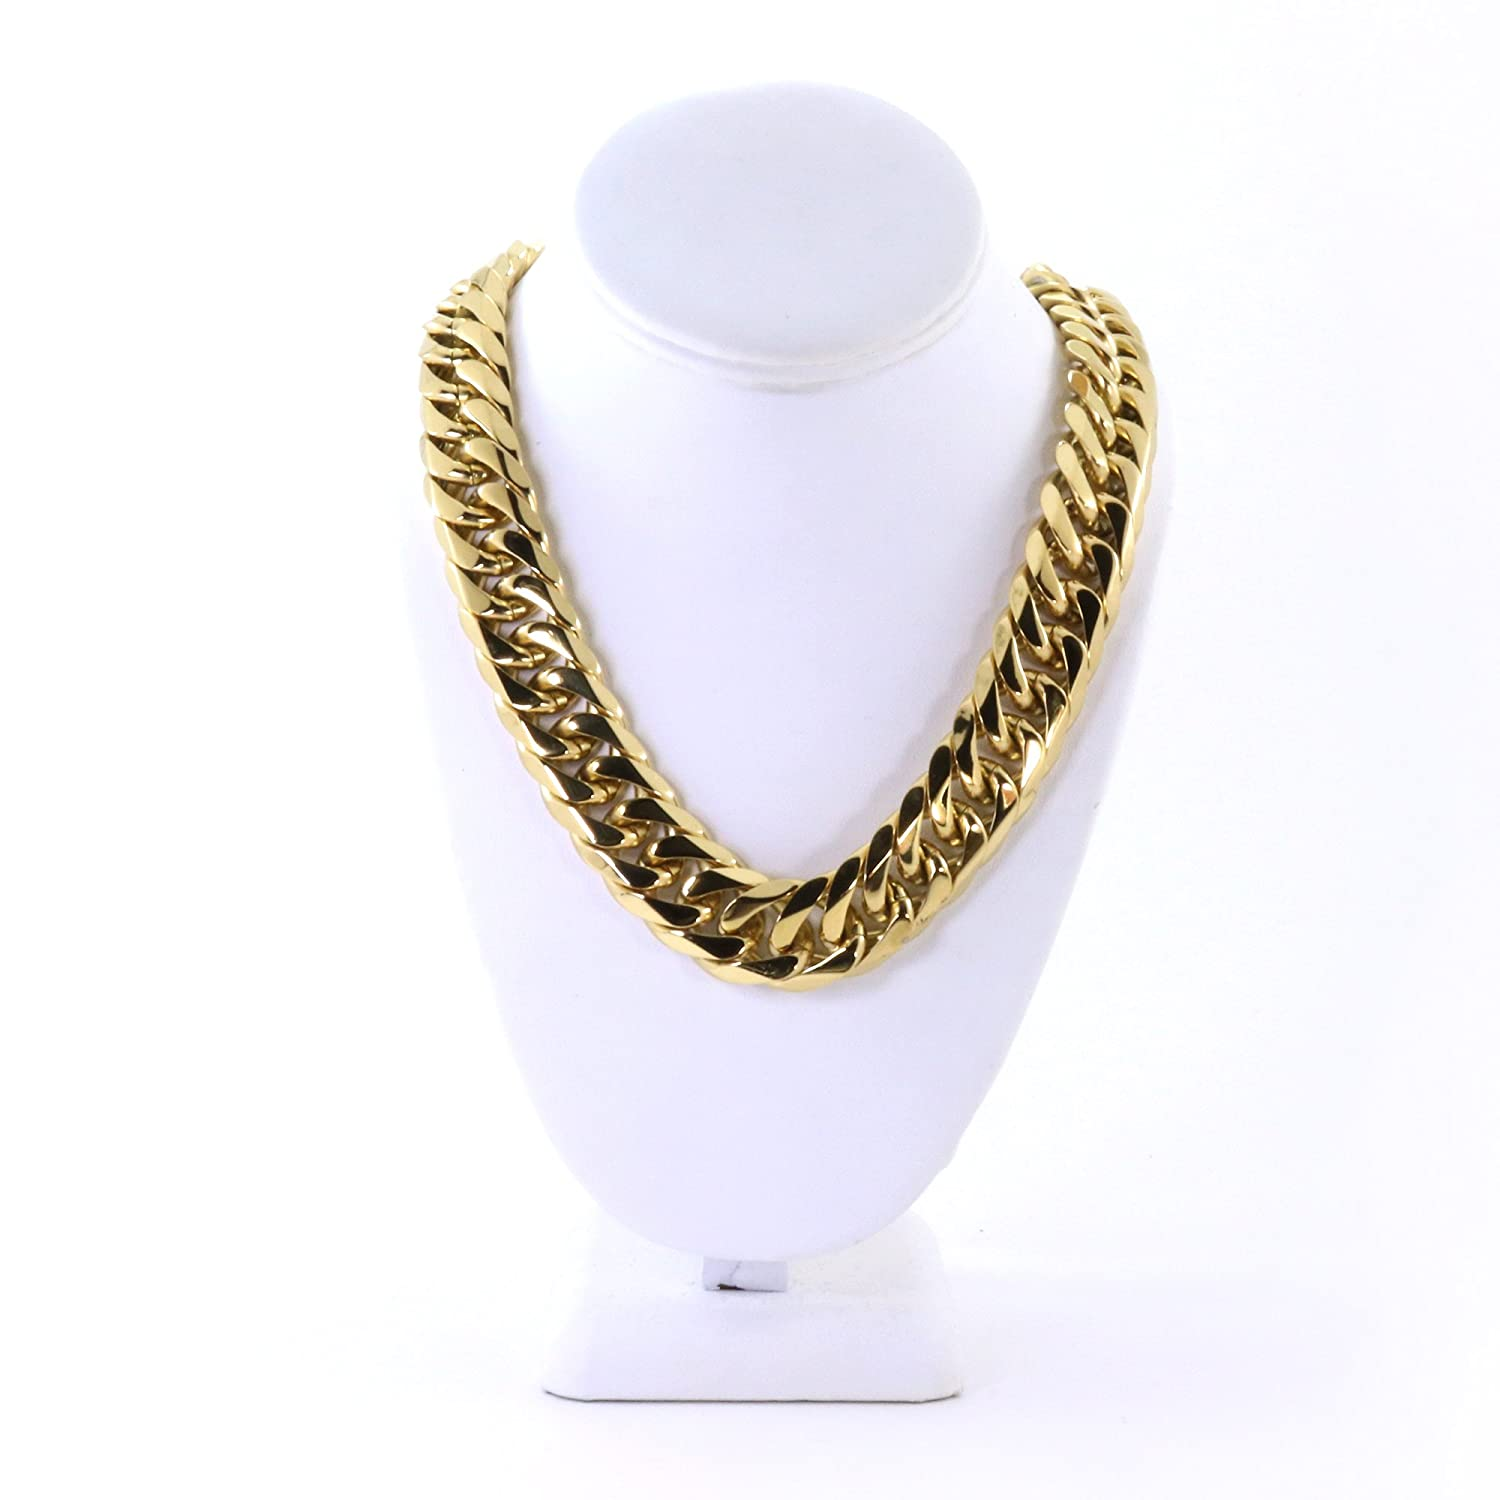 543b727c653be Solid 14k Yellow Gold Finish Stainless Steel 21mm Thick Miami Cuban ...